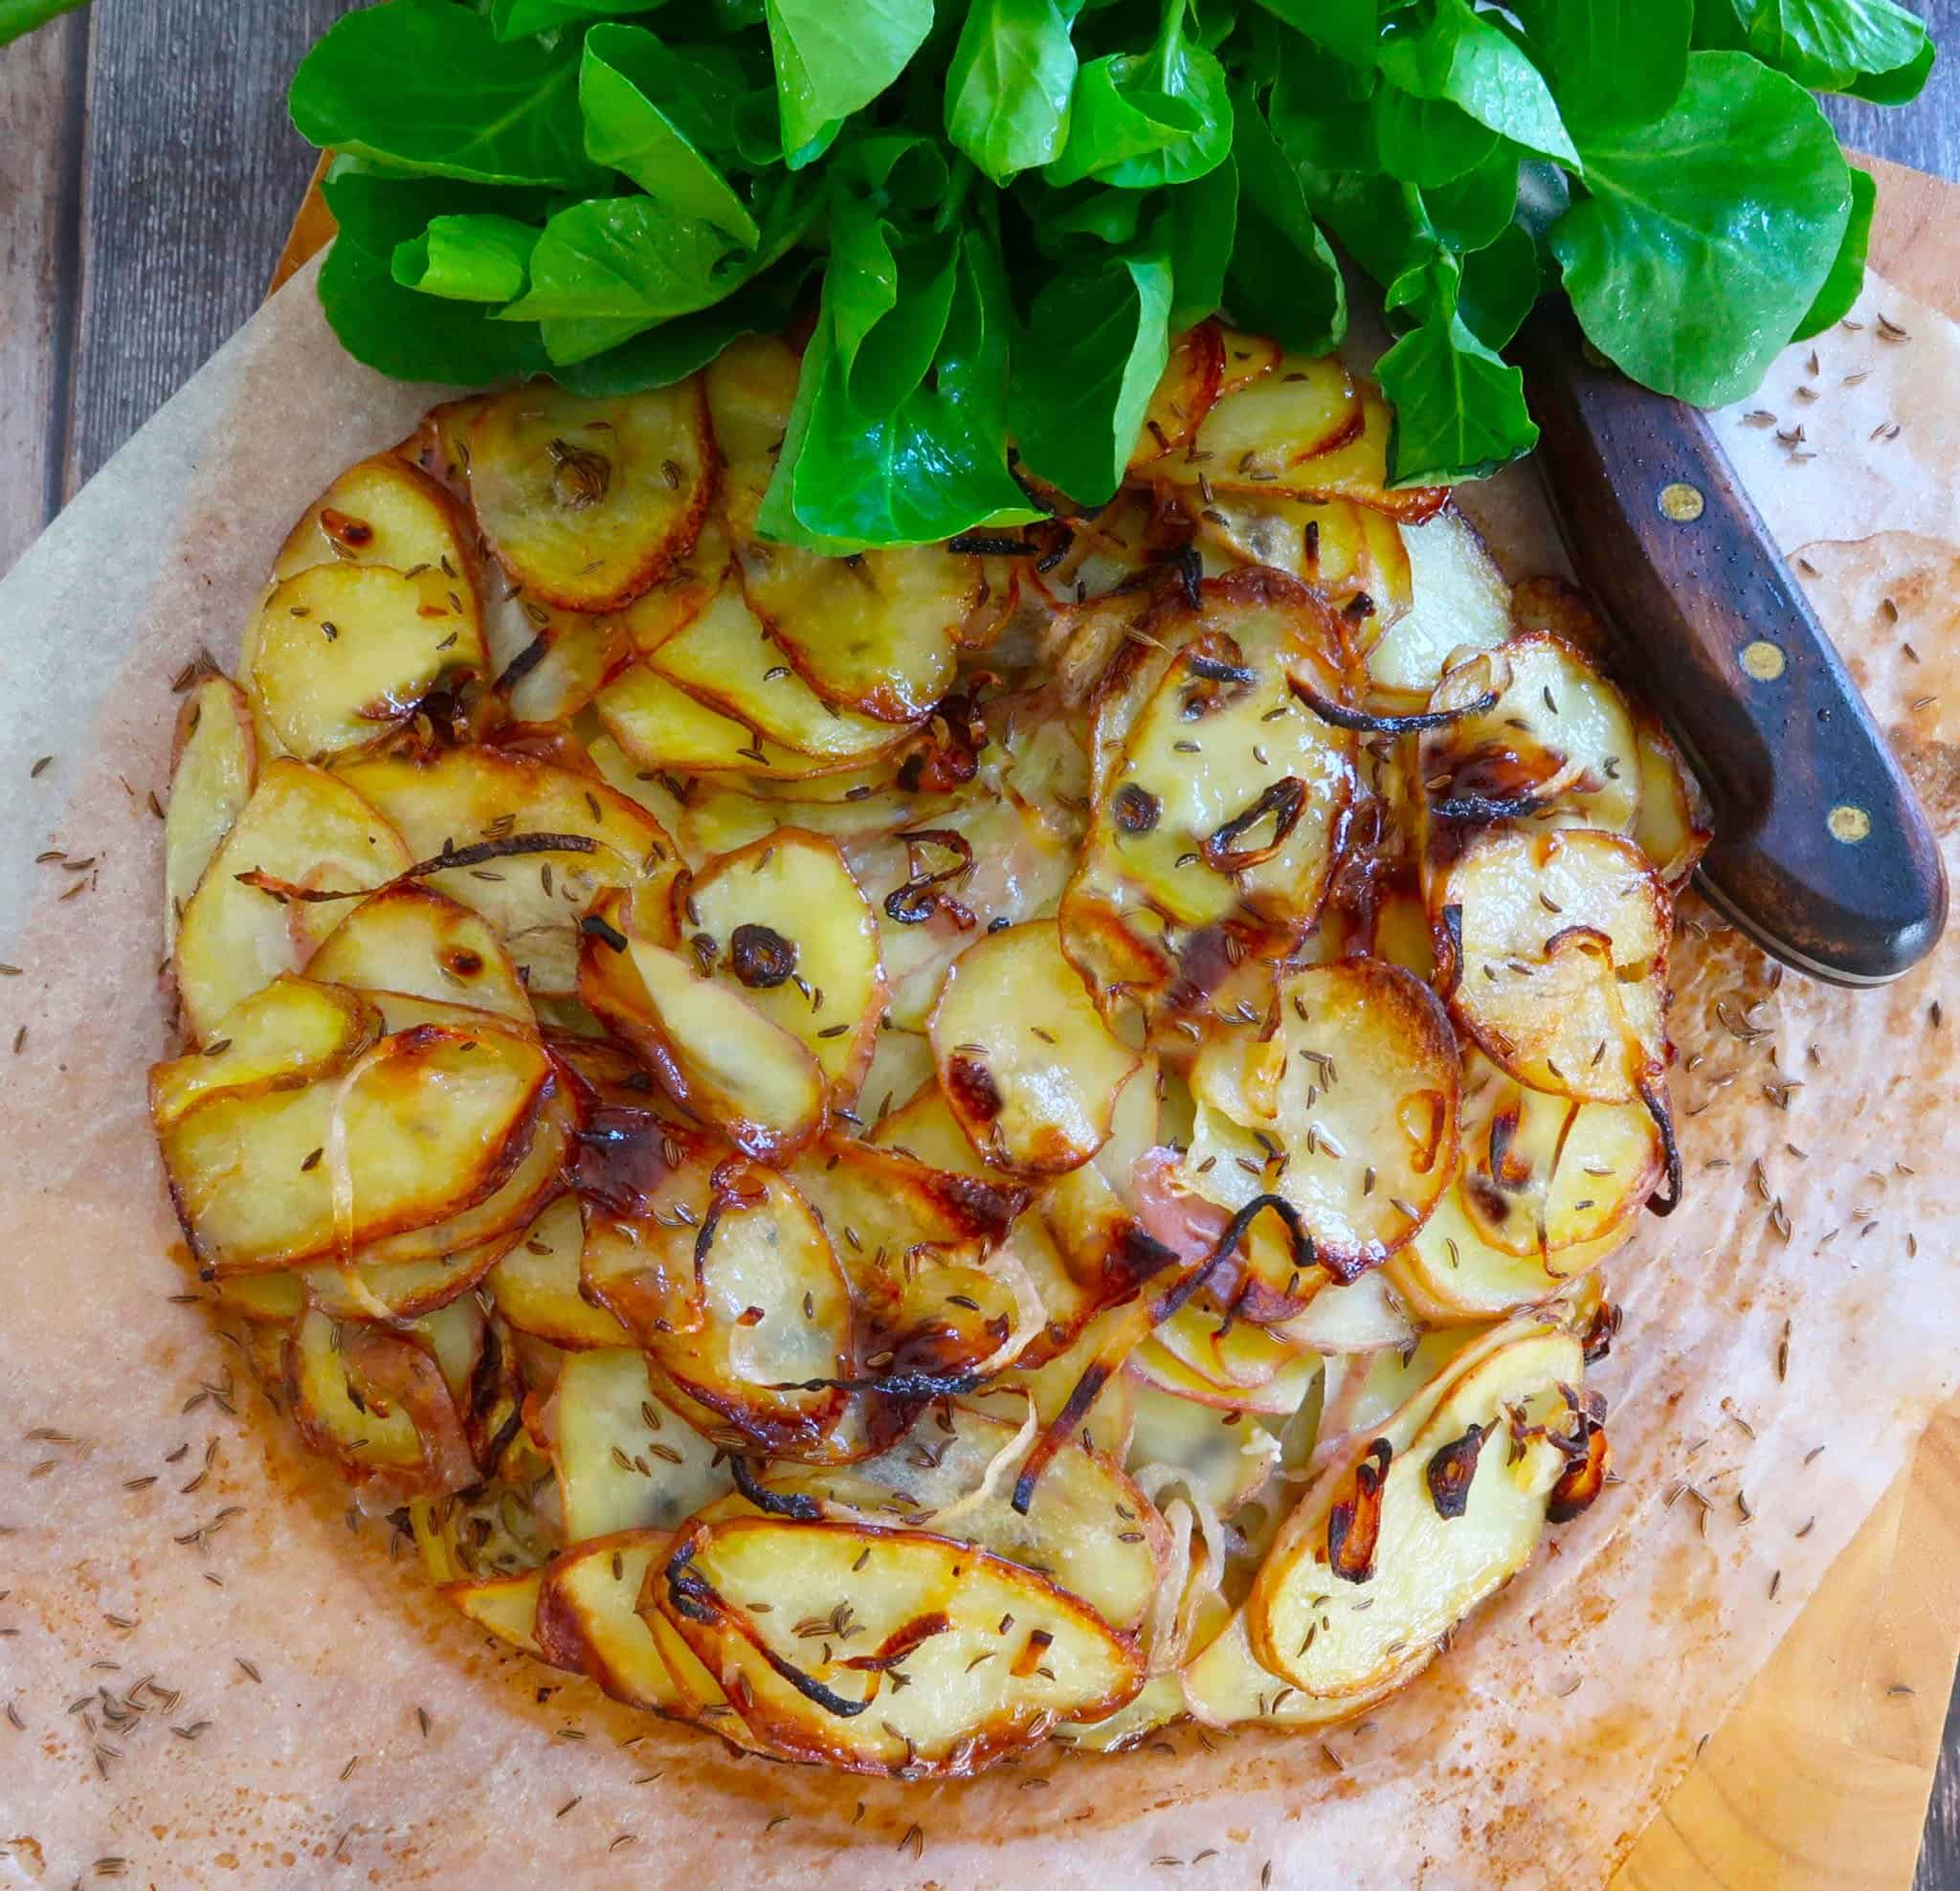 potato galette with duck fat and caraway on baking paper with a knife and watercress